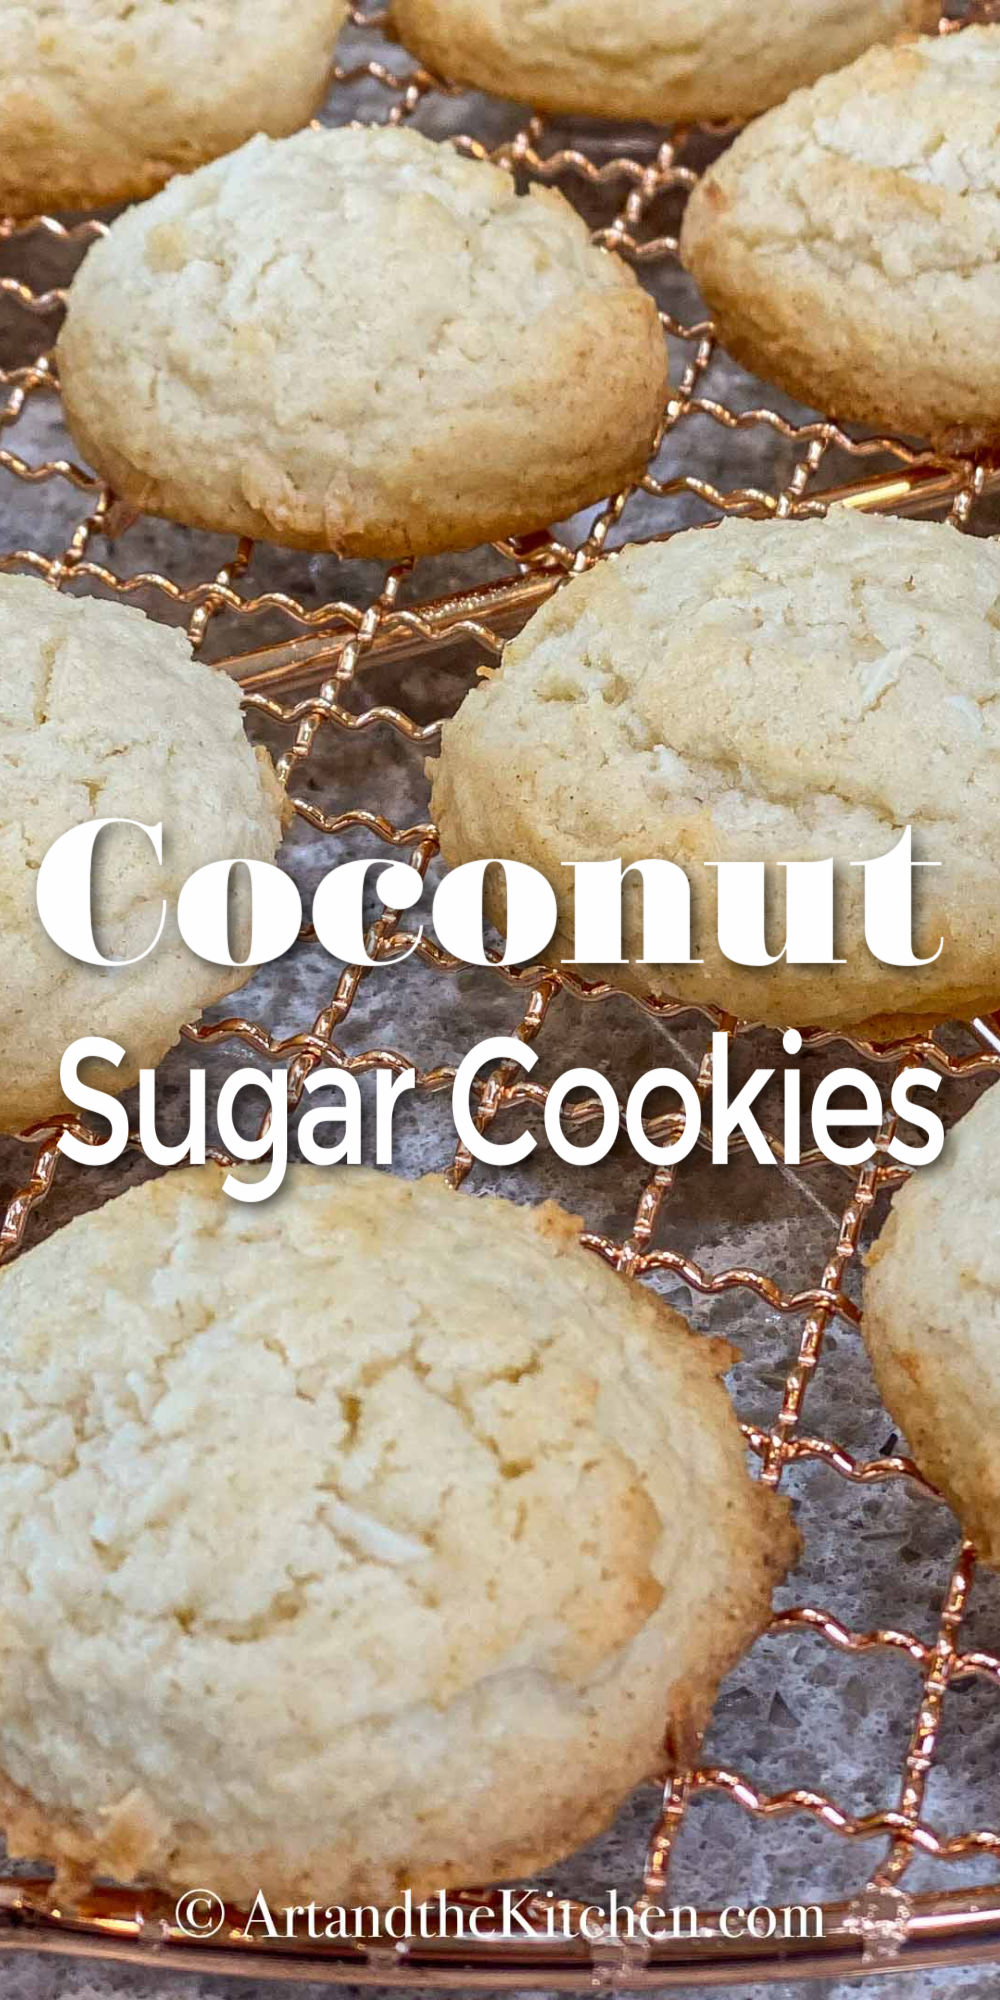 Great tasting Coconut Sugar Cookies that bake up with crisp edges and a soft center. The shredded coconut gives these cookies a great chewy texture. via @artandthekitch